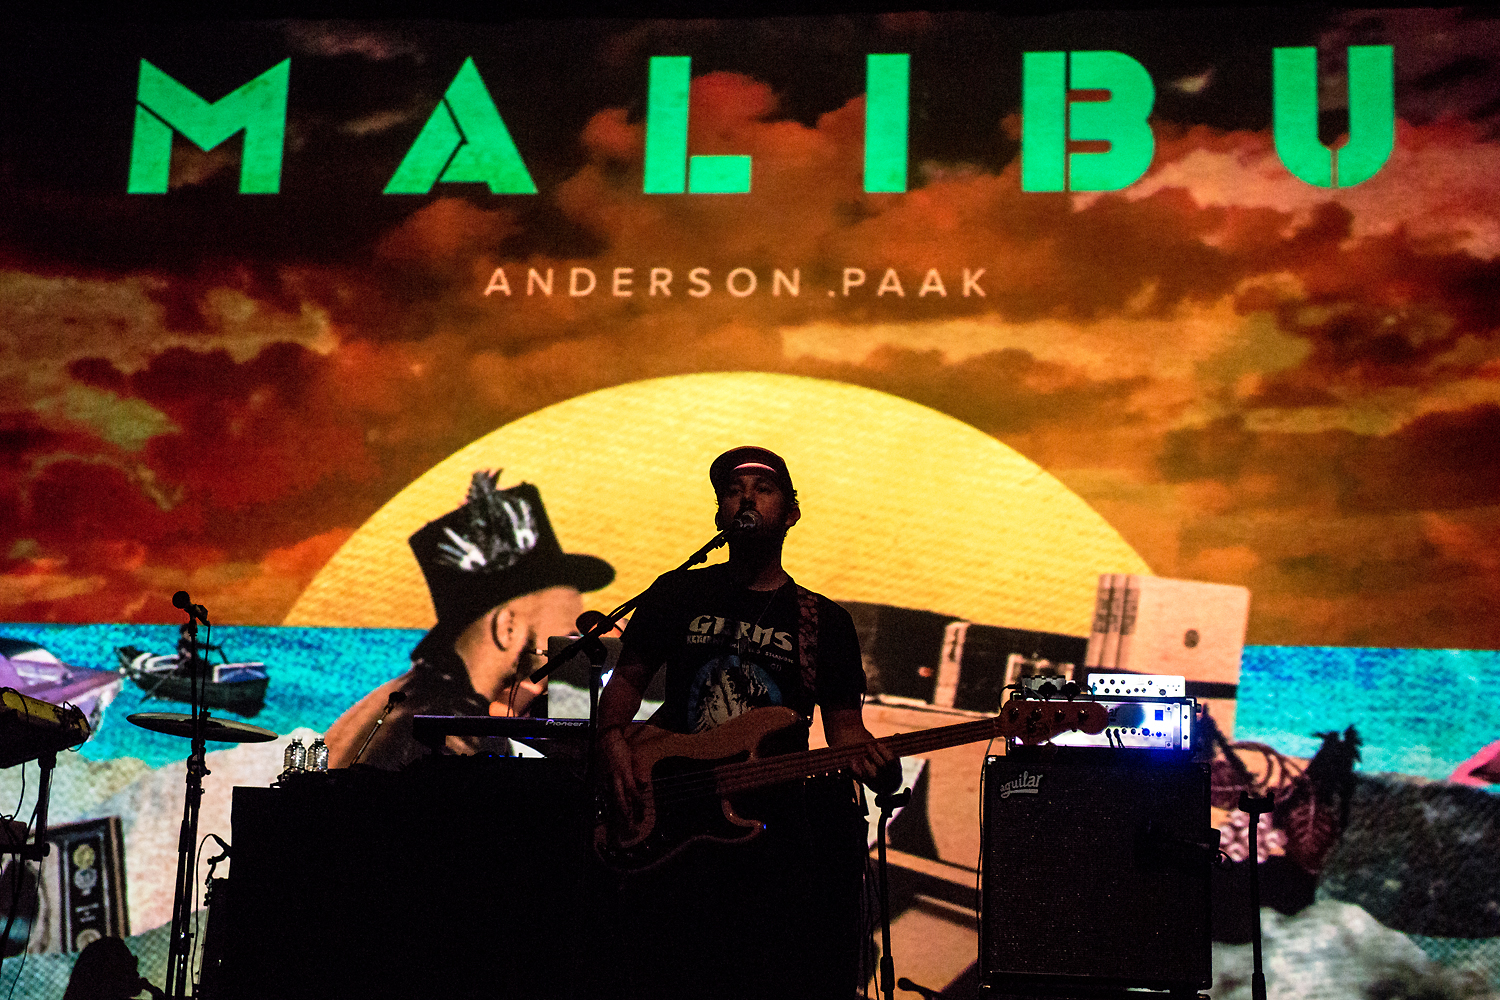 Anderson .Paak & The Free Nationals @ AB Brussel 2017 (Jan Van den Bulck)